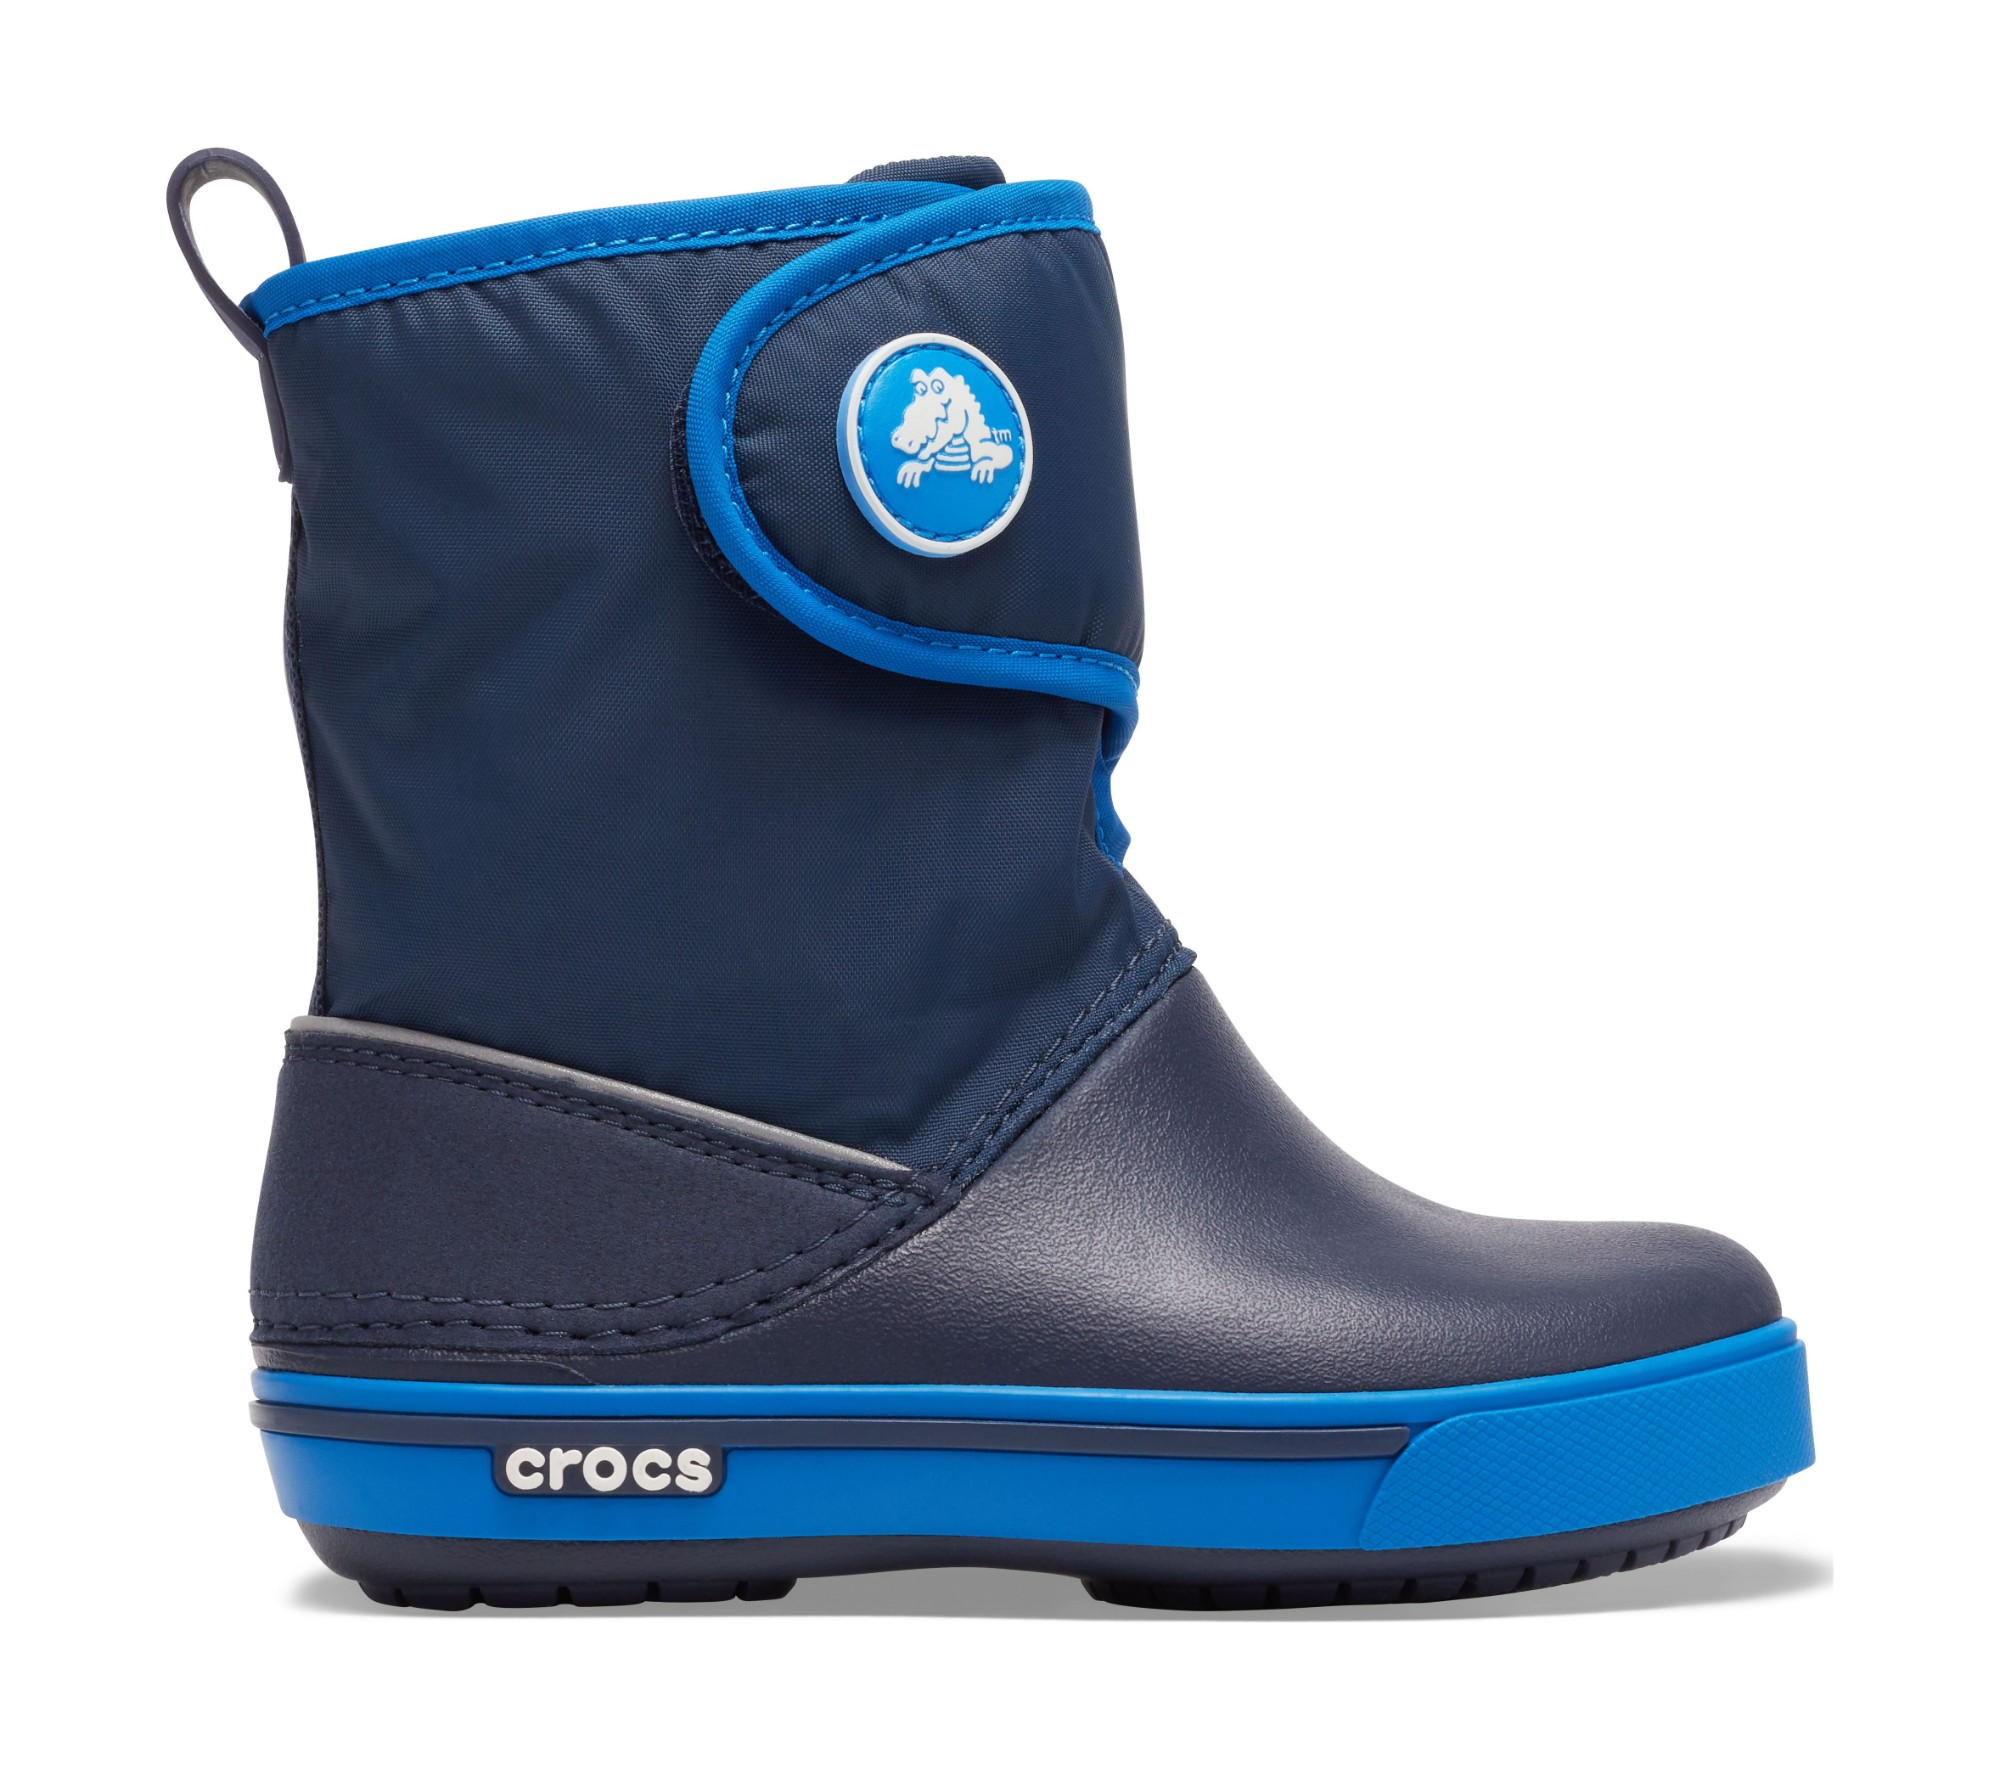 Crocs™ Kids' Crocband II.5 Gust Boot Navy/Bright Cobalt 29